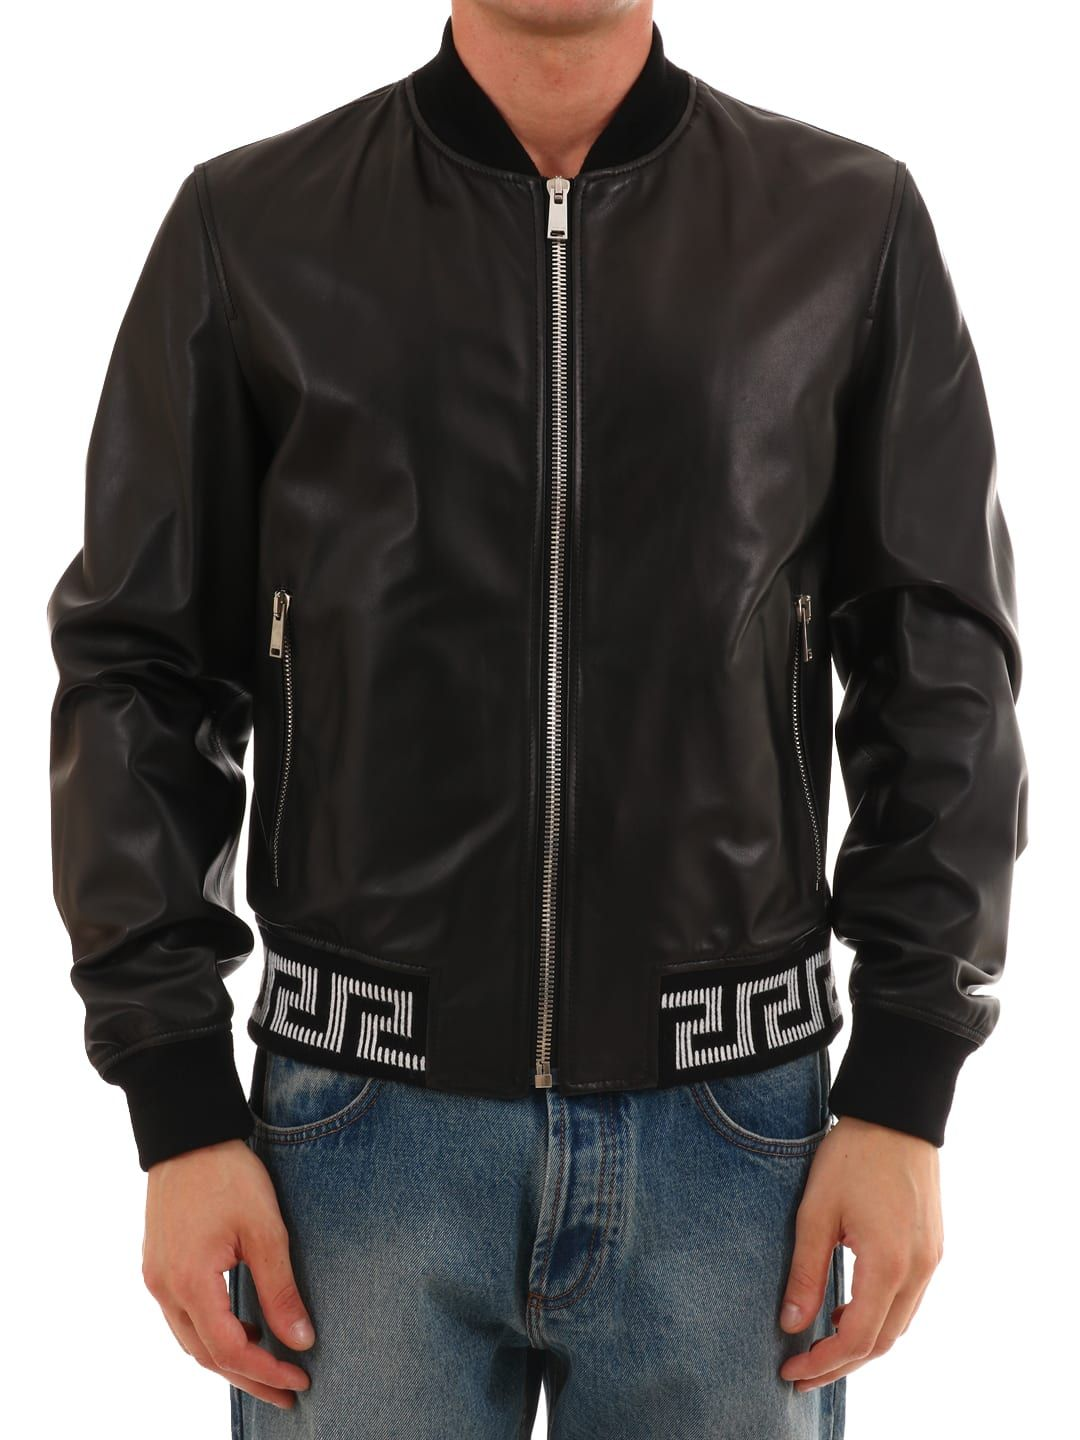 Versace Bomber In Black Leather Modesens Leather Bomber Jacket Leather Jacket Jackets [ 1440 x 1080 Pixel ]